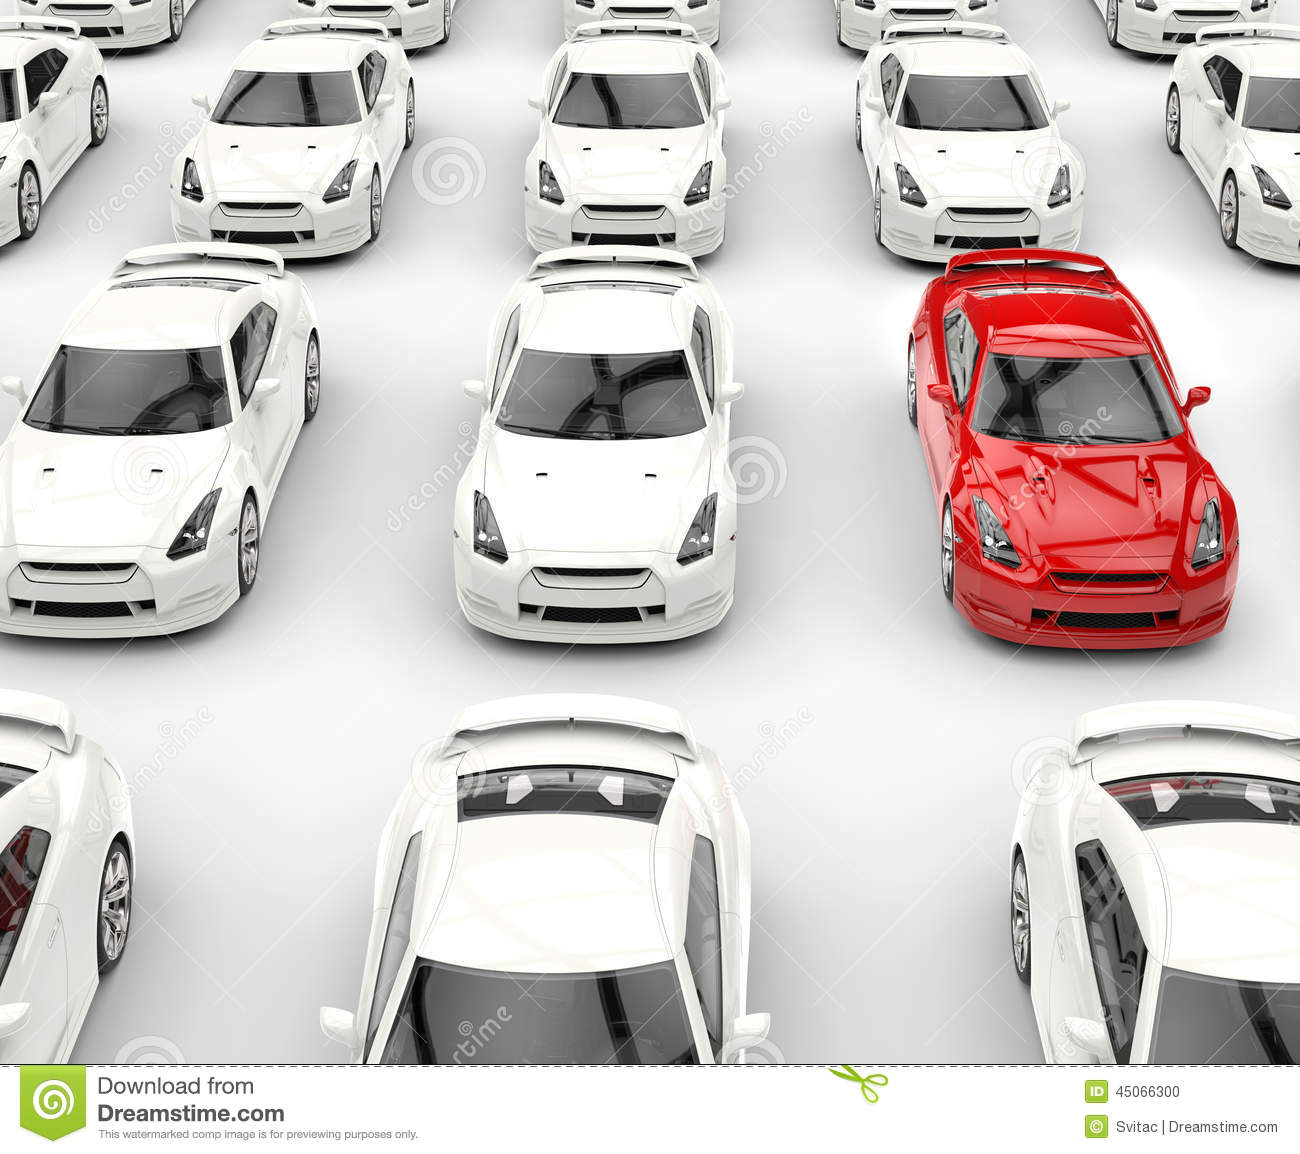 red stand out car among many white cars stock photo. Black Bedroom Furniture Sets. Home Design Ideas